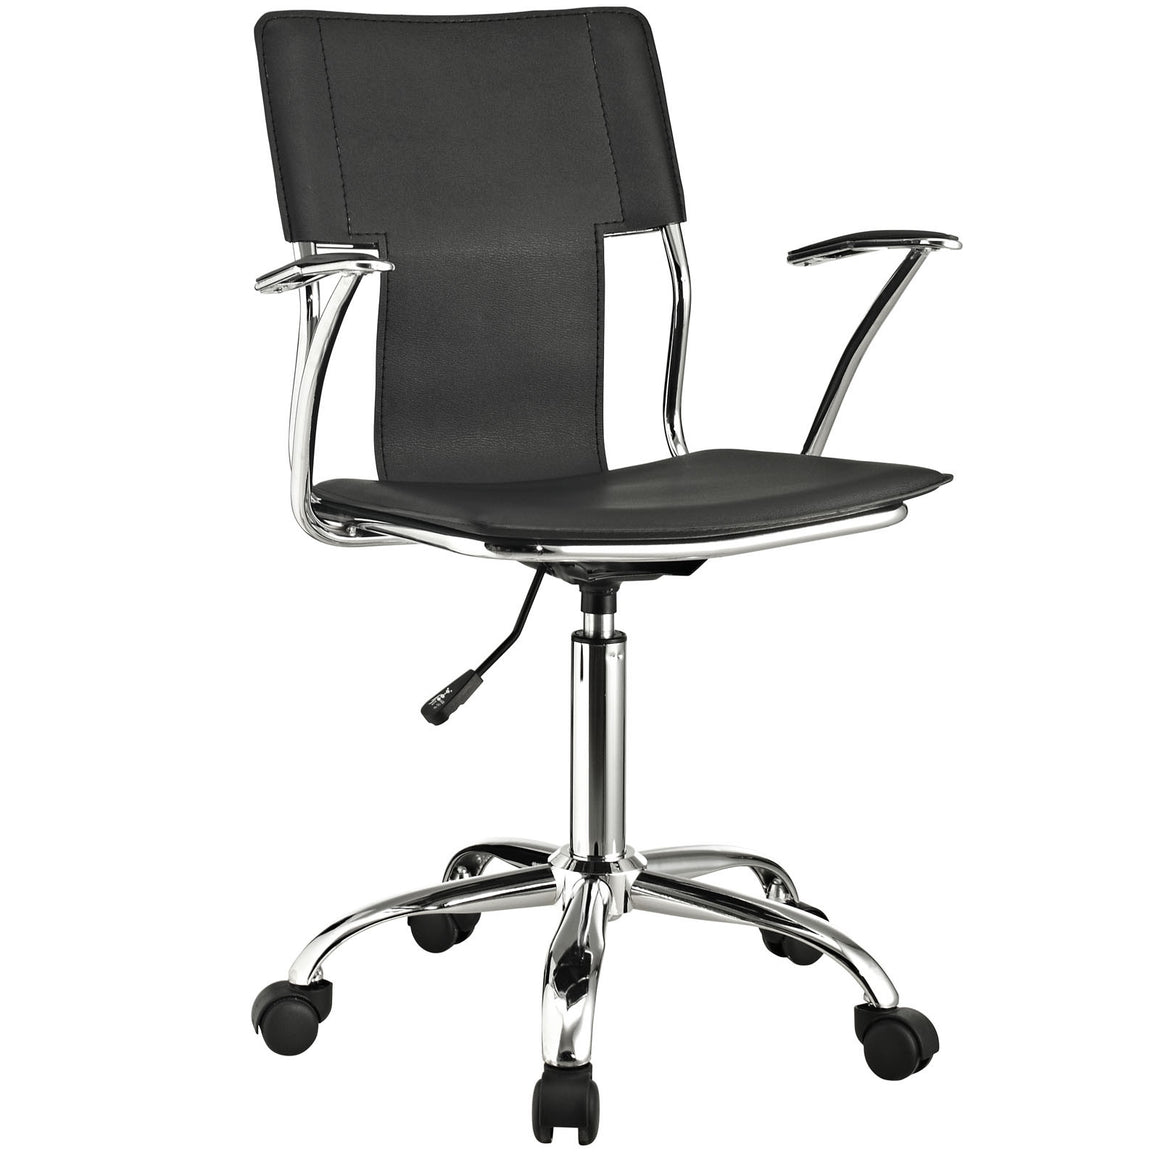 Studio Office Chair - taylor ray decor